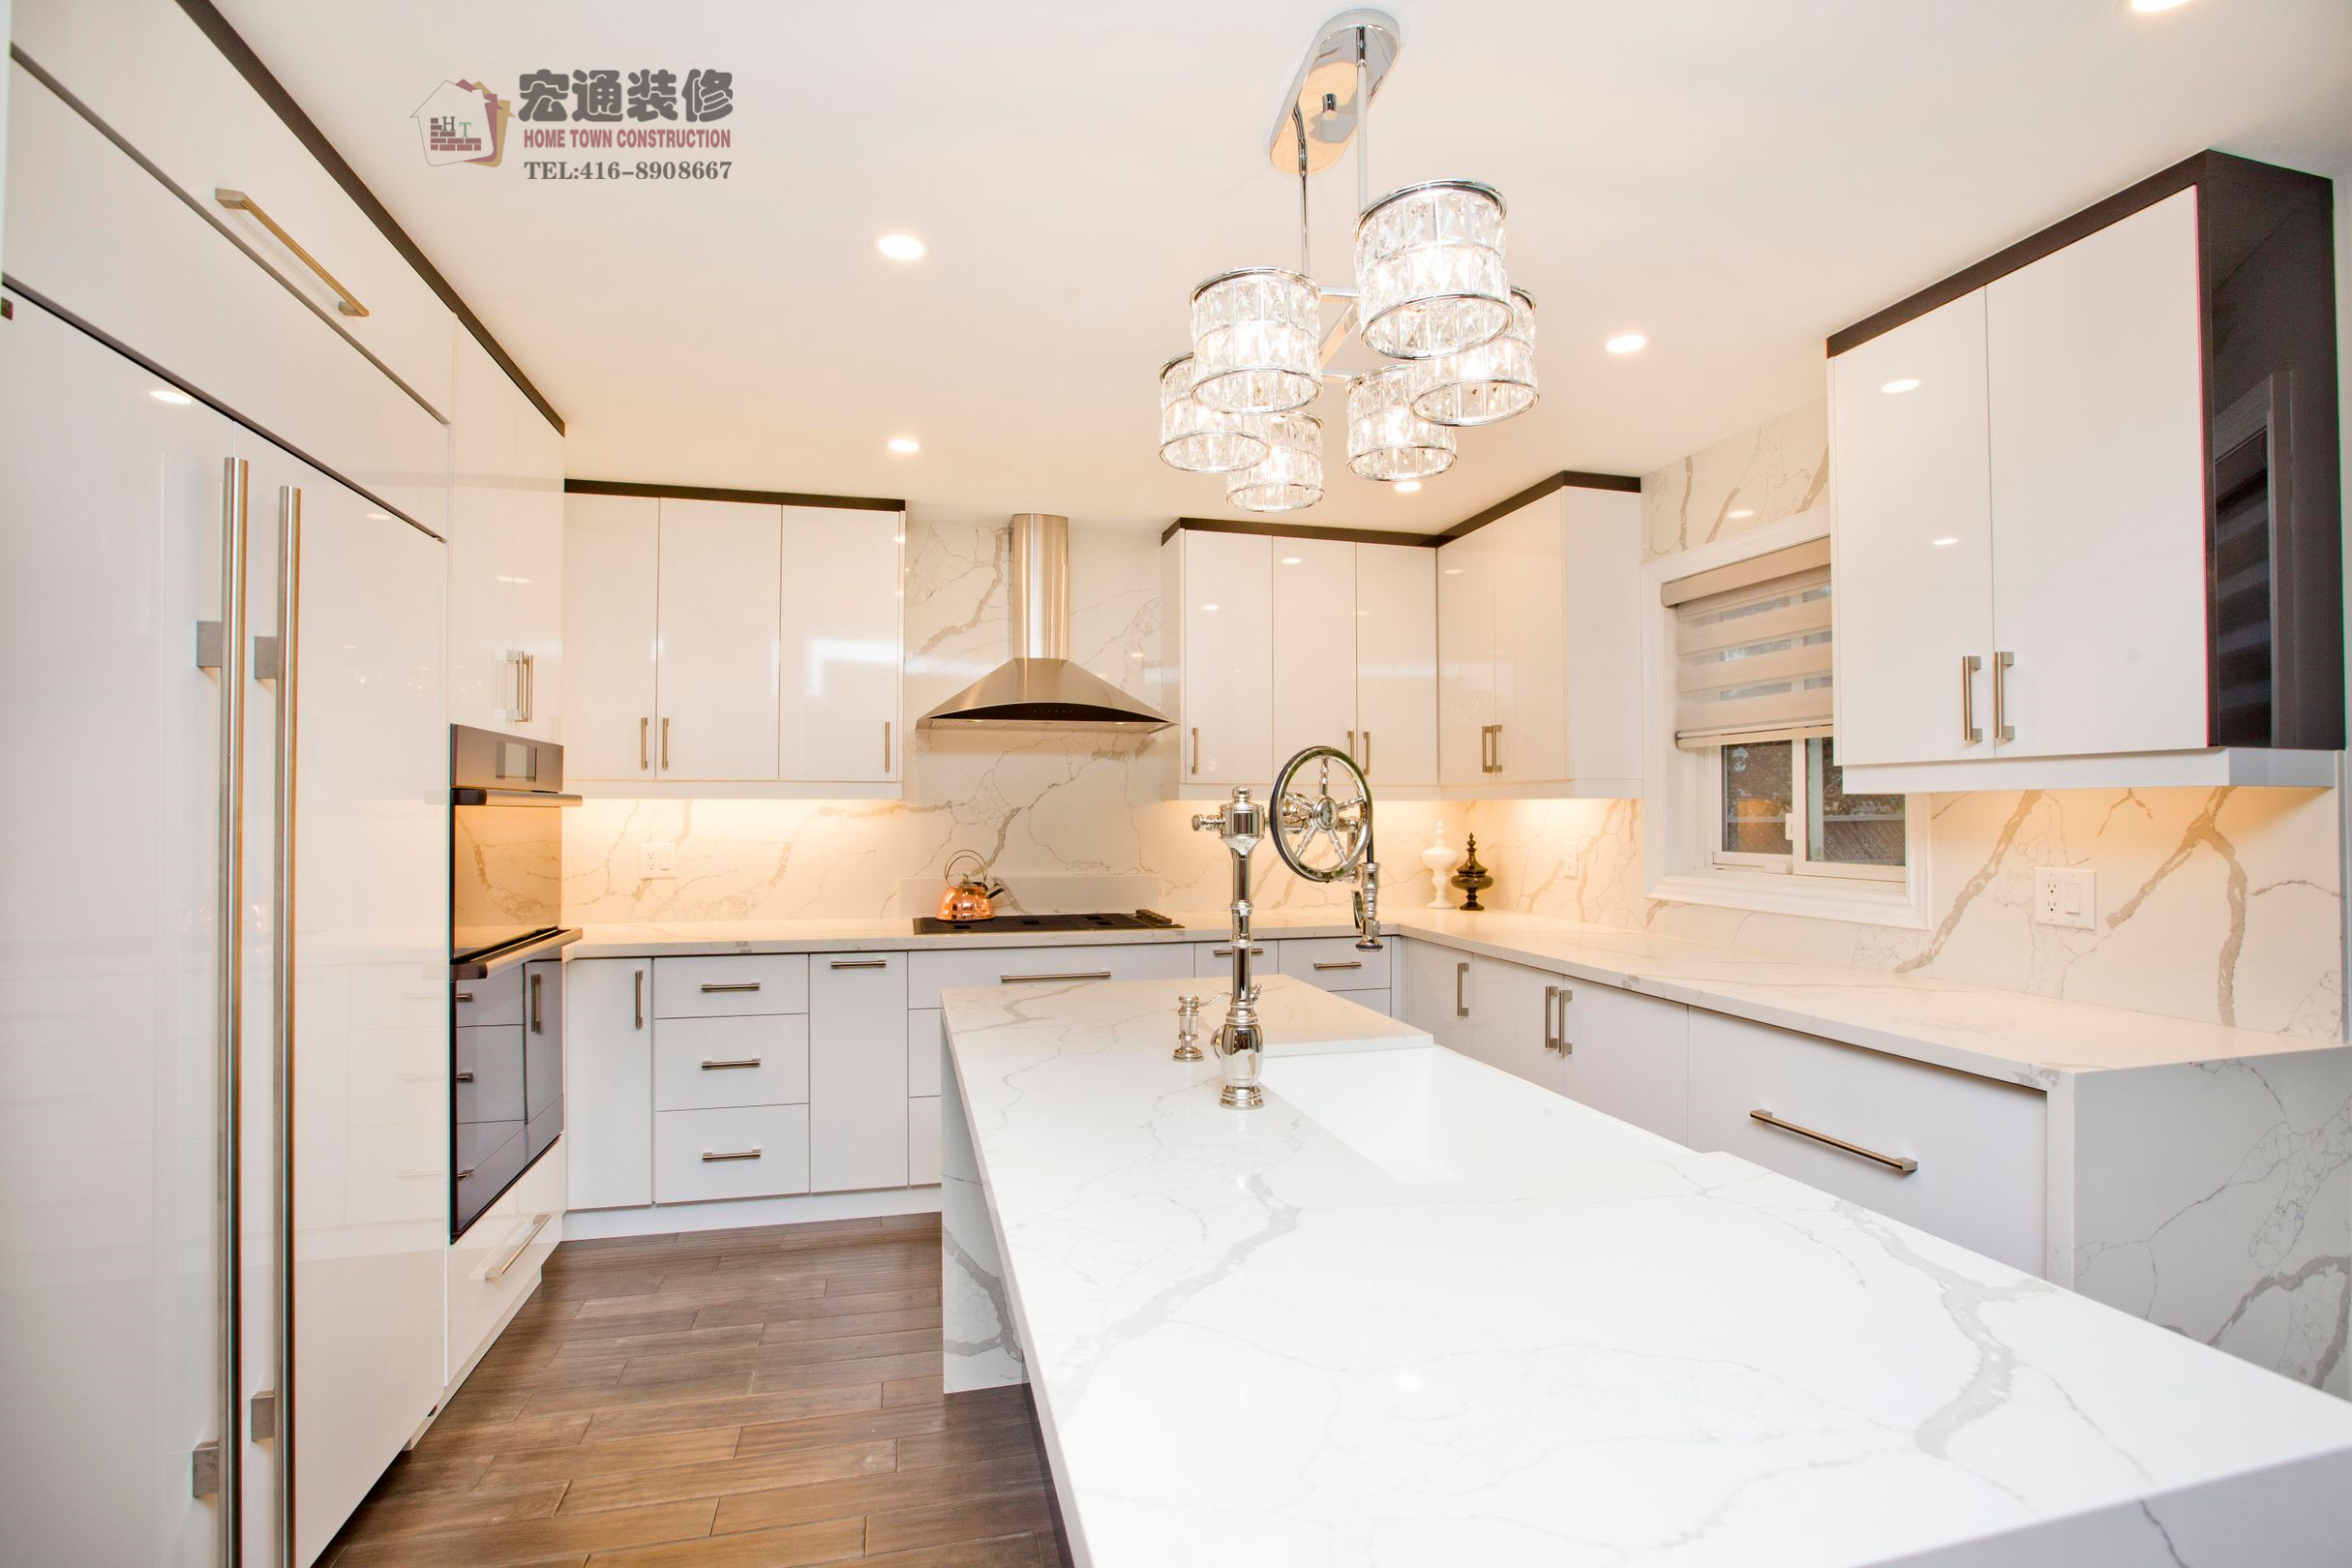 hometown construction remodeling renovation living room bedroom basement stair side door ceiling lighting flooring laundry bathroom kitchen toronto markham north york richmond hill aurora house condo